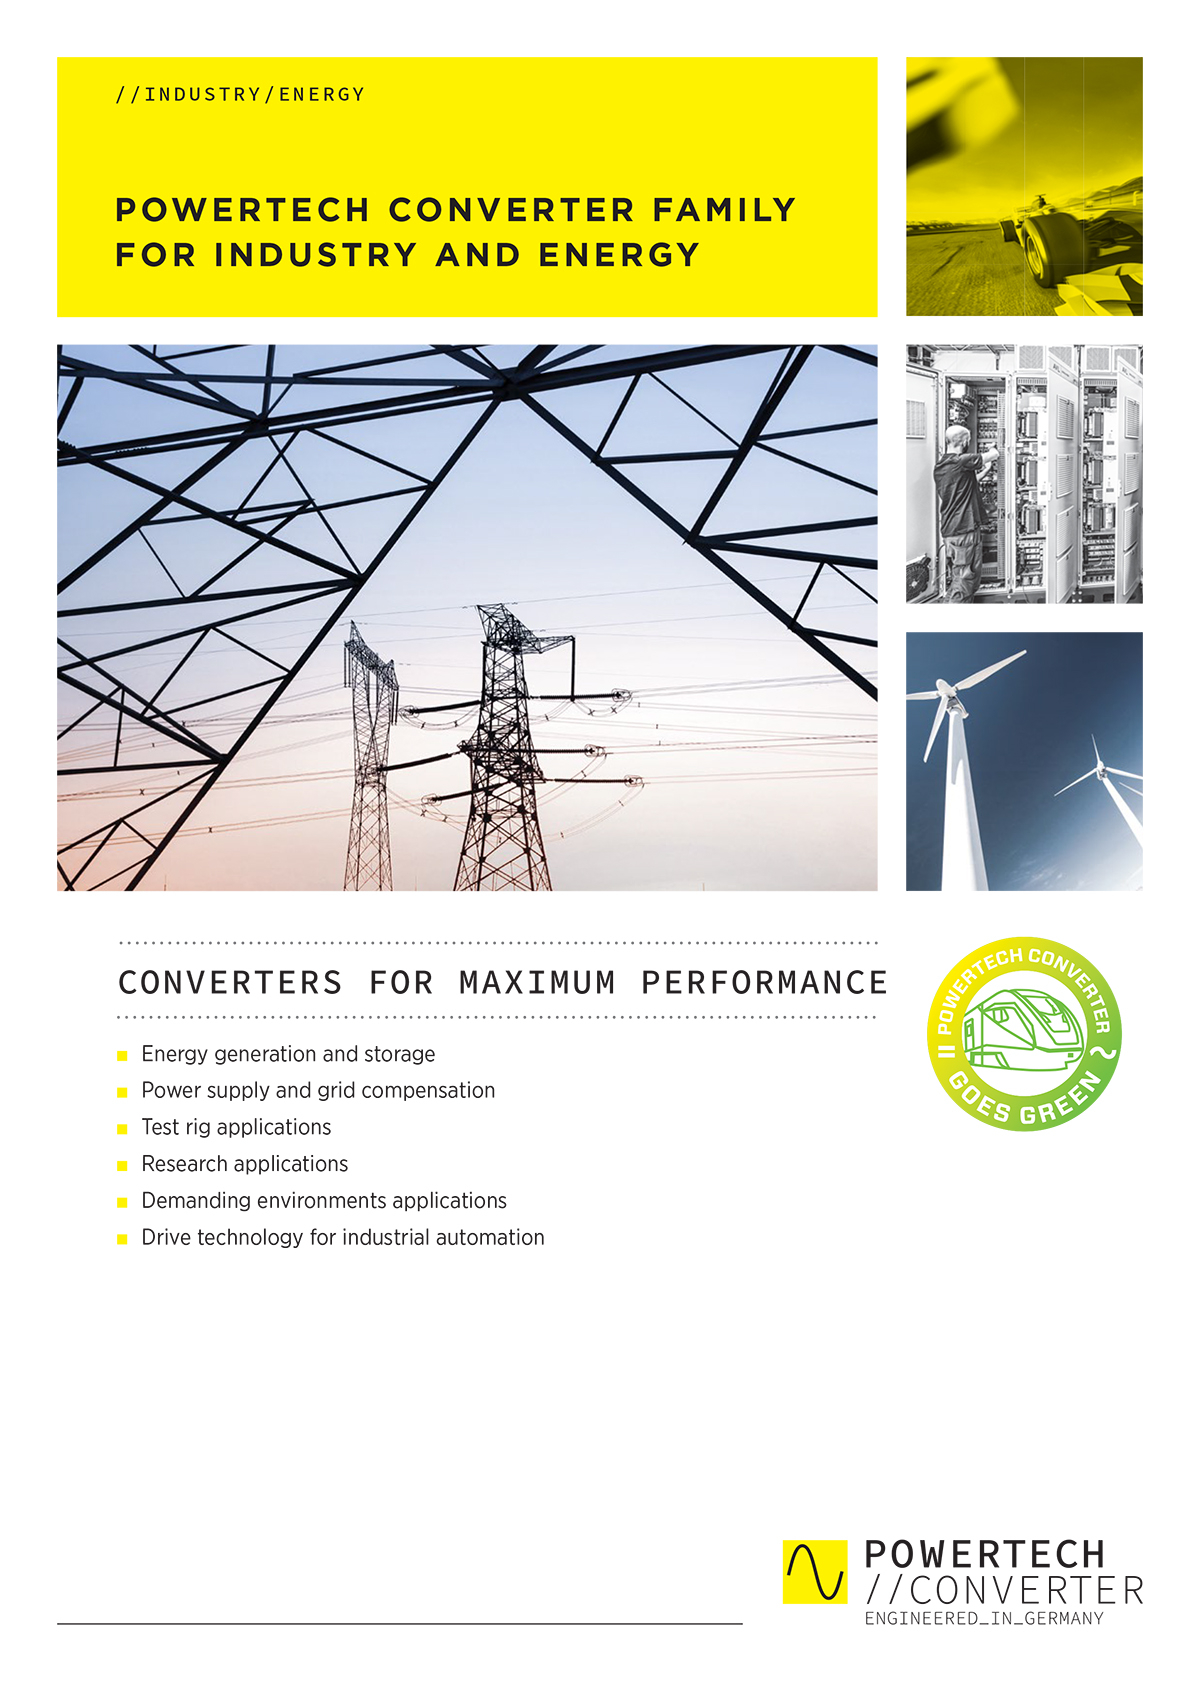 POWERTECH CONVERTER FAMILY FOR INDUSTRY AND ENERGY